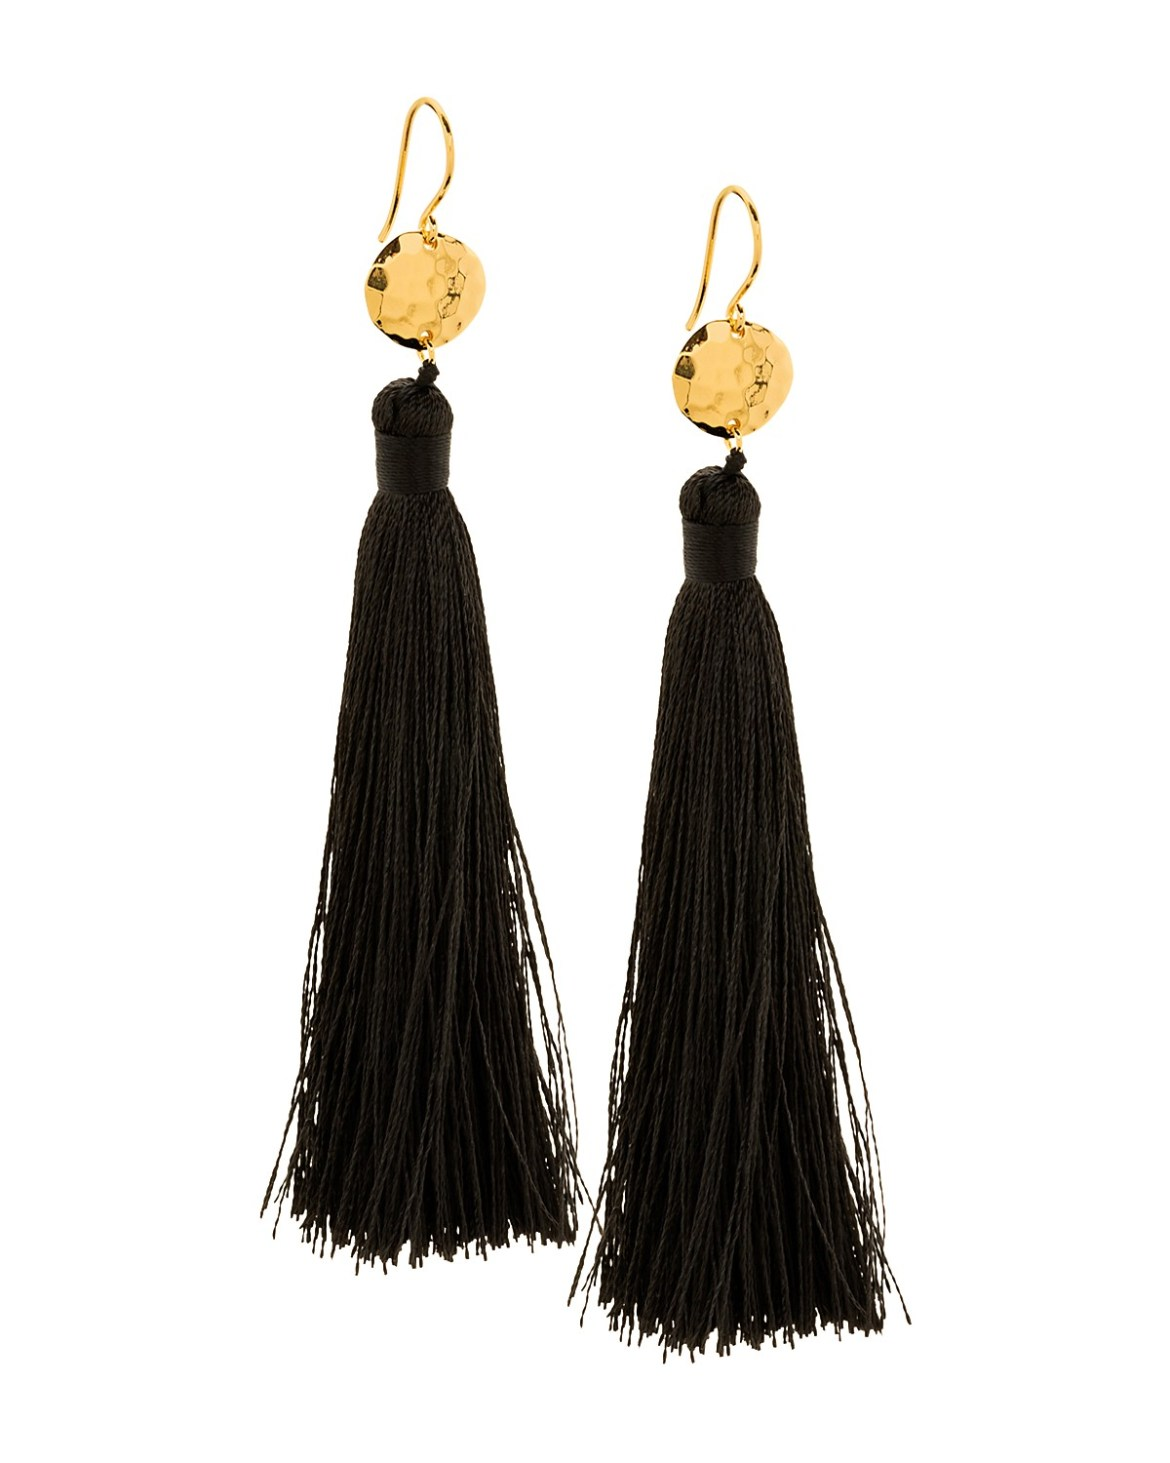 Gorjana Tassel Earrings go for $55